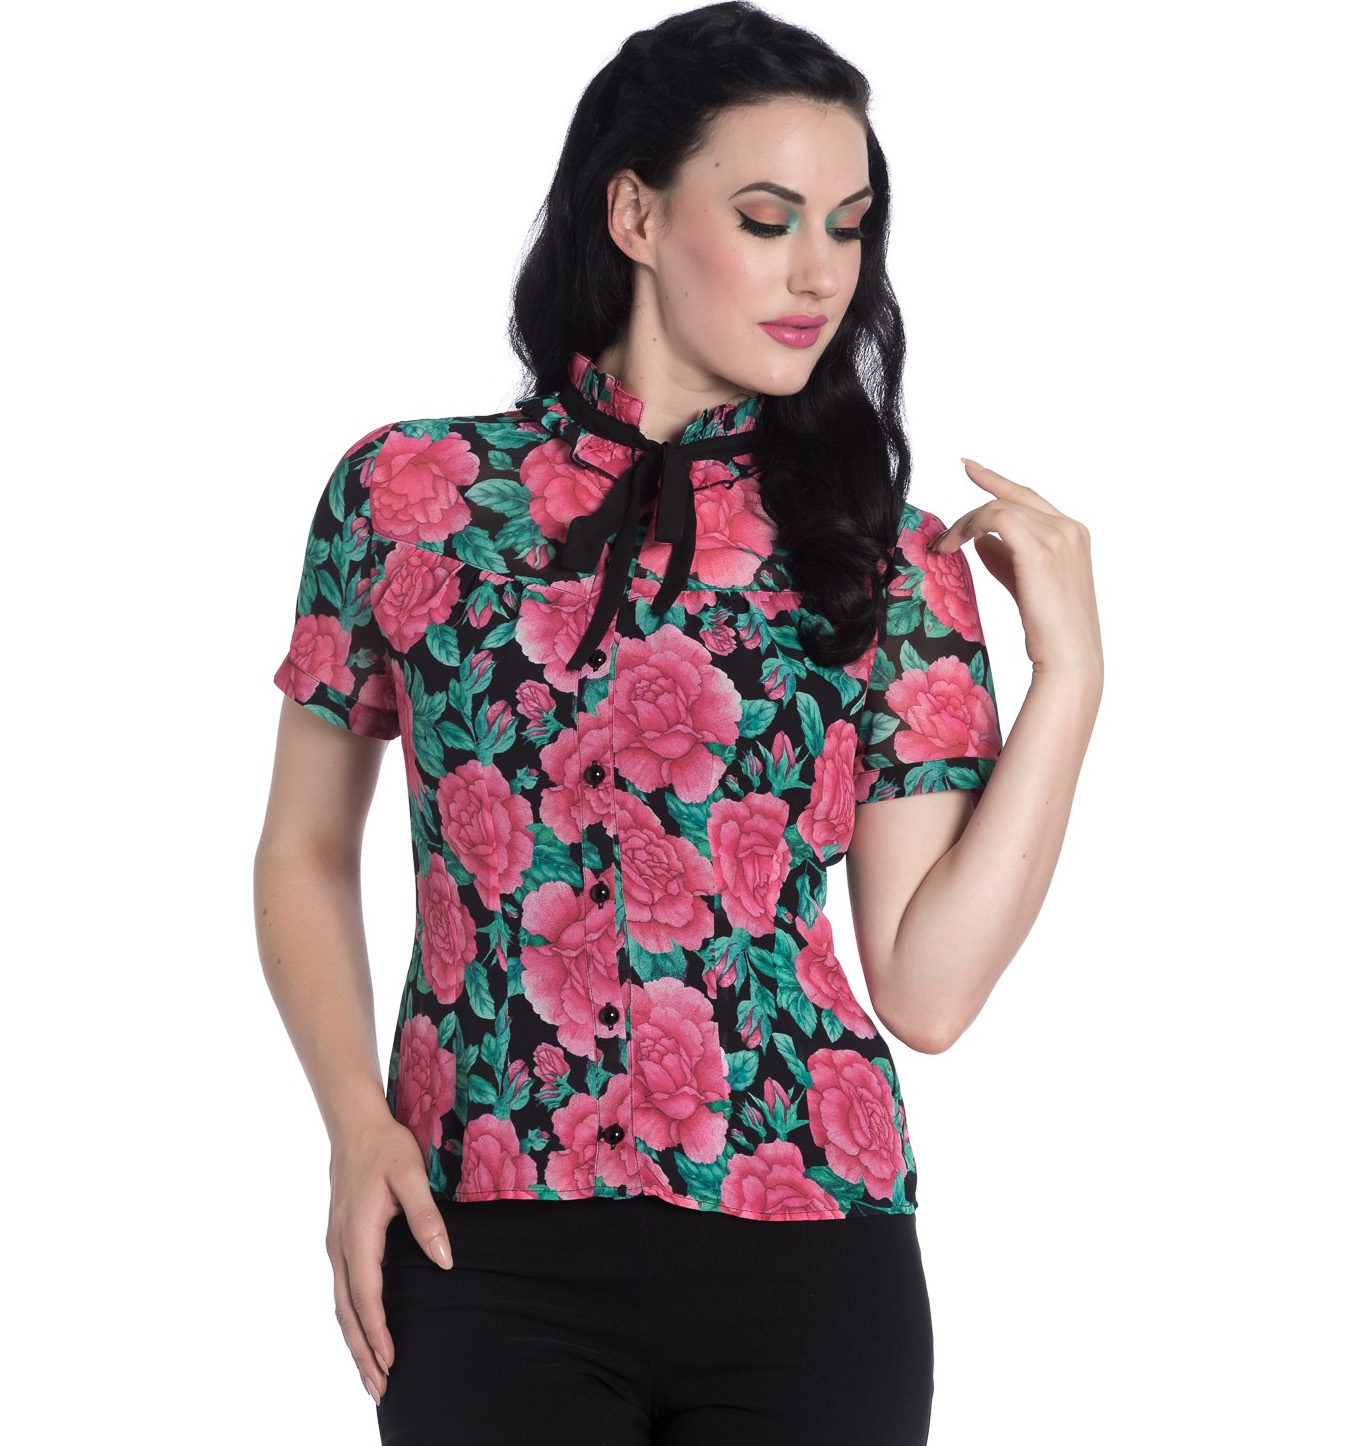 Hell-Bunny-Shirt-Top-Flowers-Roses-EDEN-ROSE-Black-Pink-Blouse-All-Sizes thumbnail 31